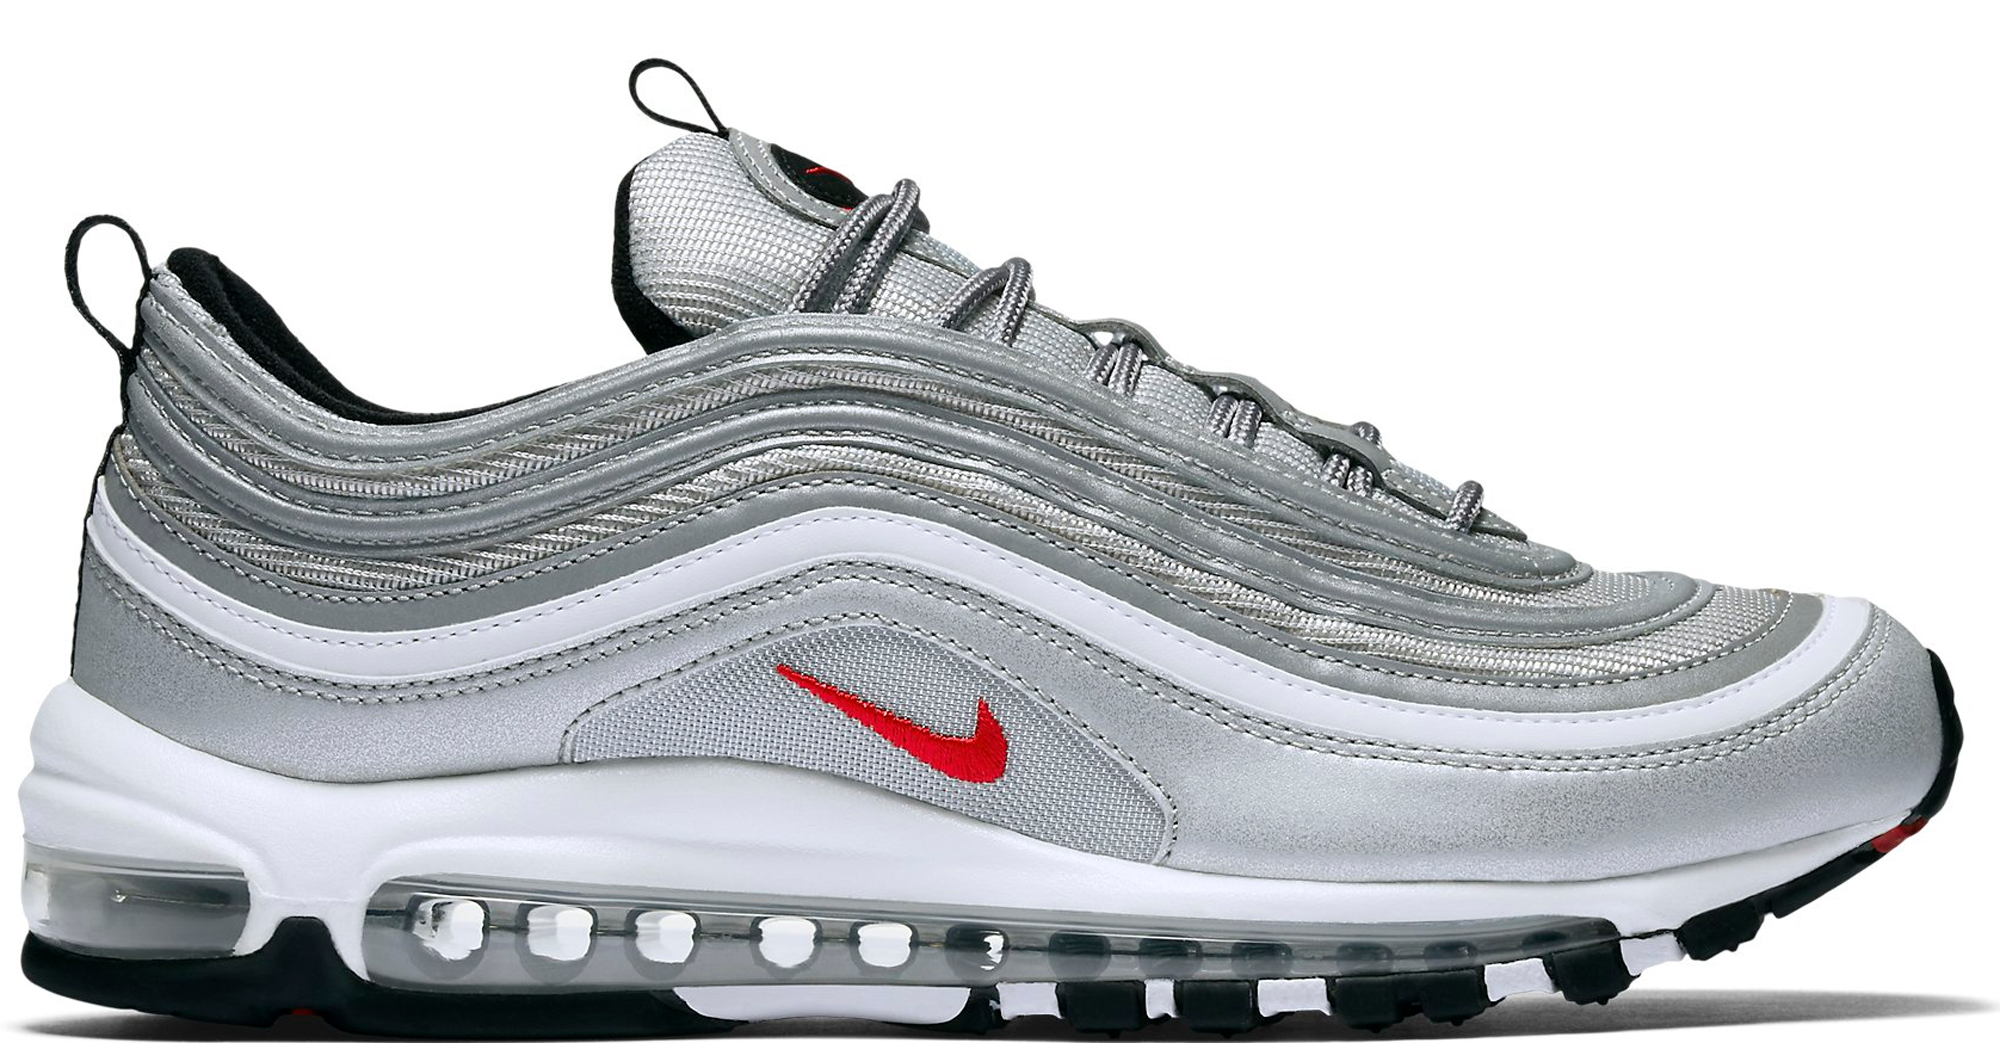 Nike Air Max 97 OG Silver Bullet (2017) - StockX News